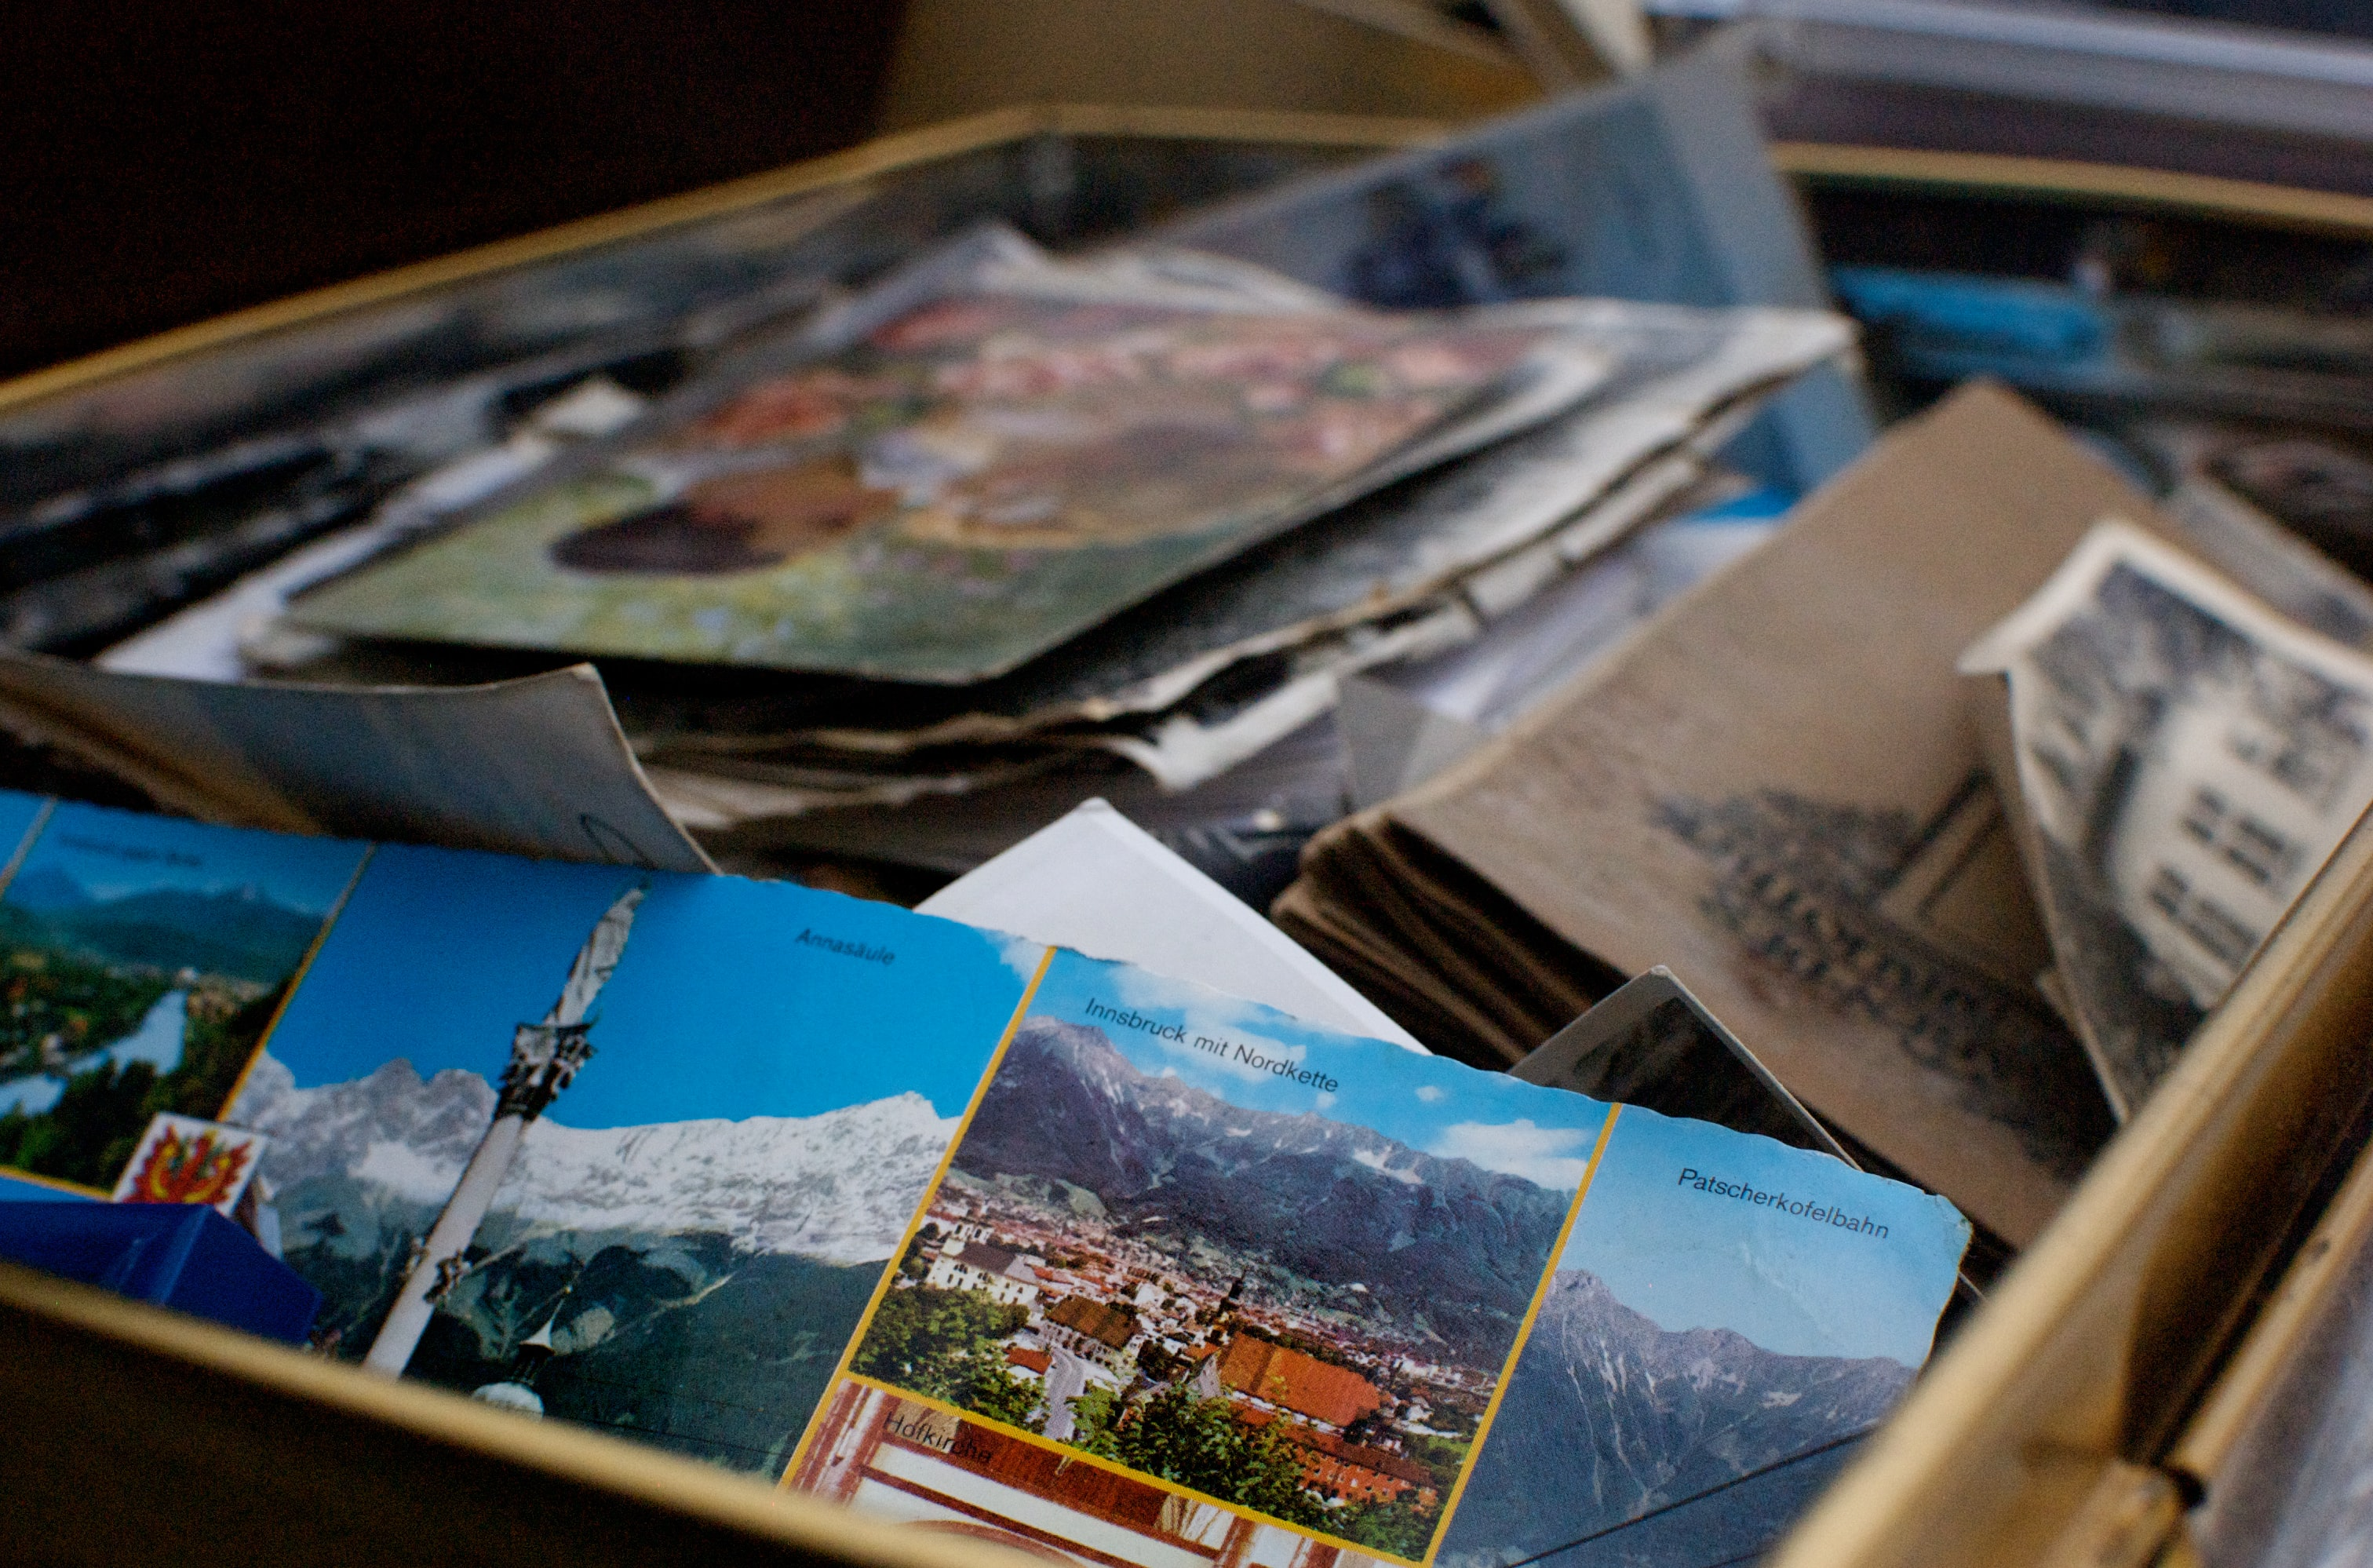 A box full of german literature, scraps of paper, and tourist leaflets in a box